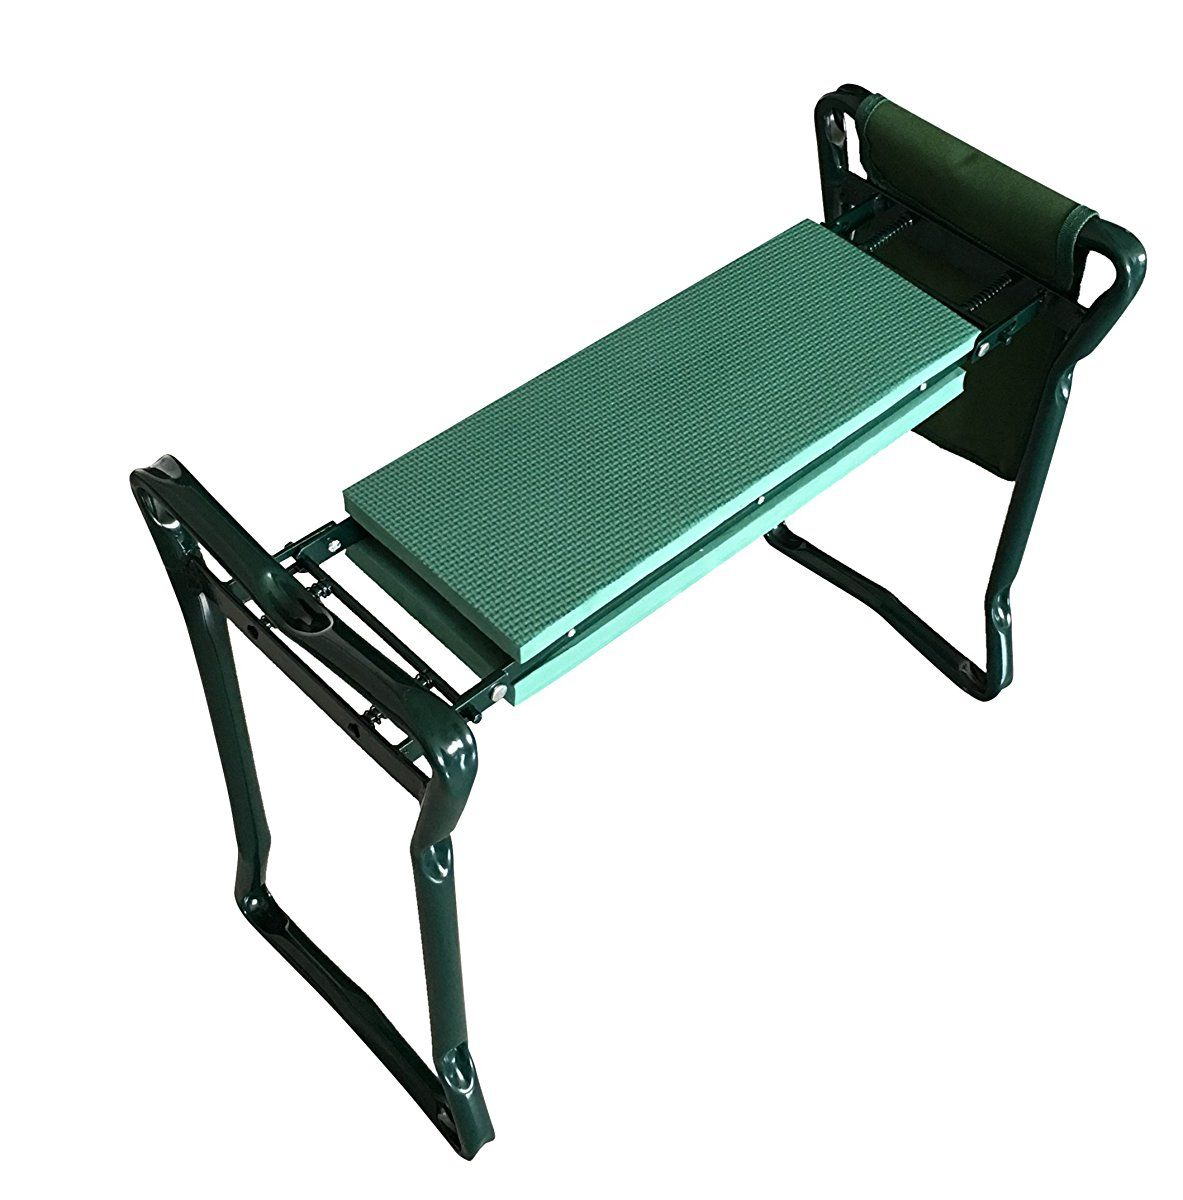 Folding Garden Bench Seat Stool Kneeler